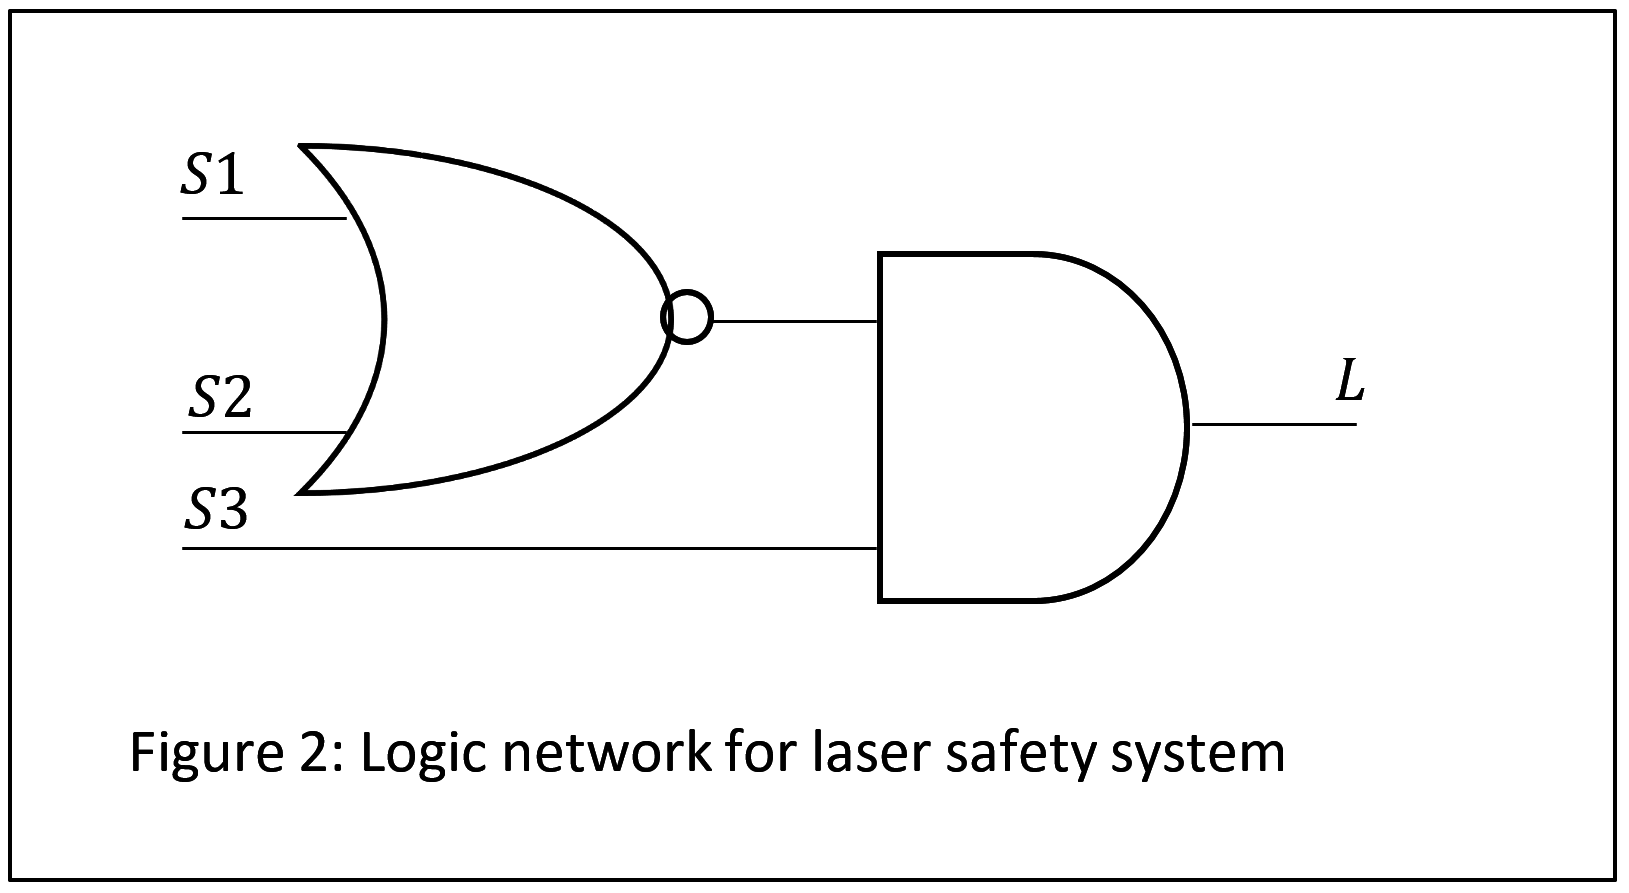 Digital Logic Examples Electrical Engineering 2 Way Switch Gate Figure Network For Laser Safety Click To Expand